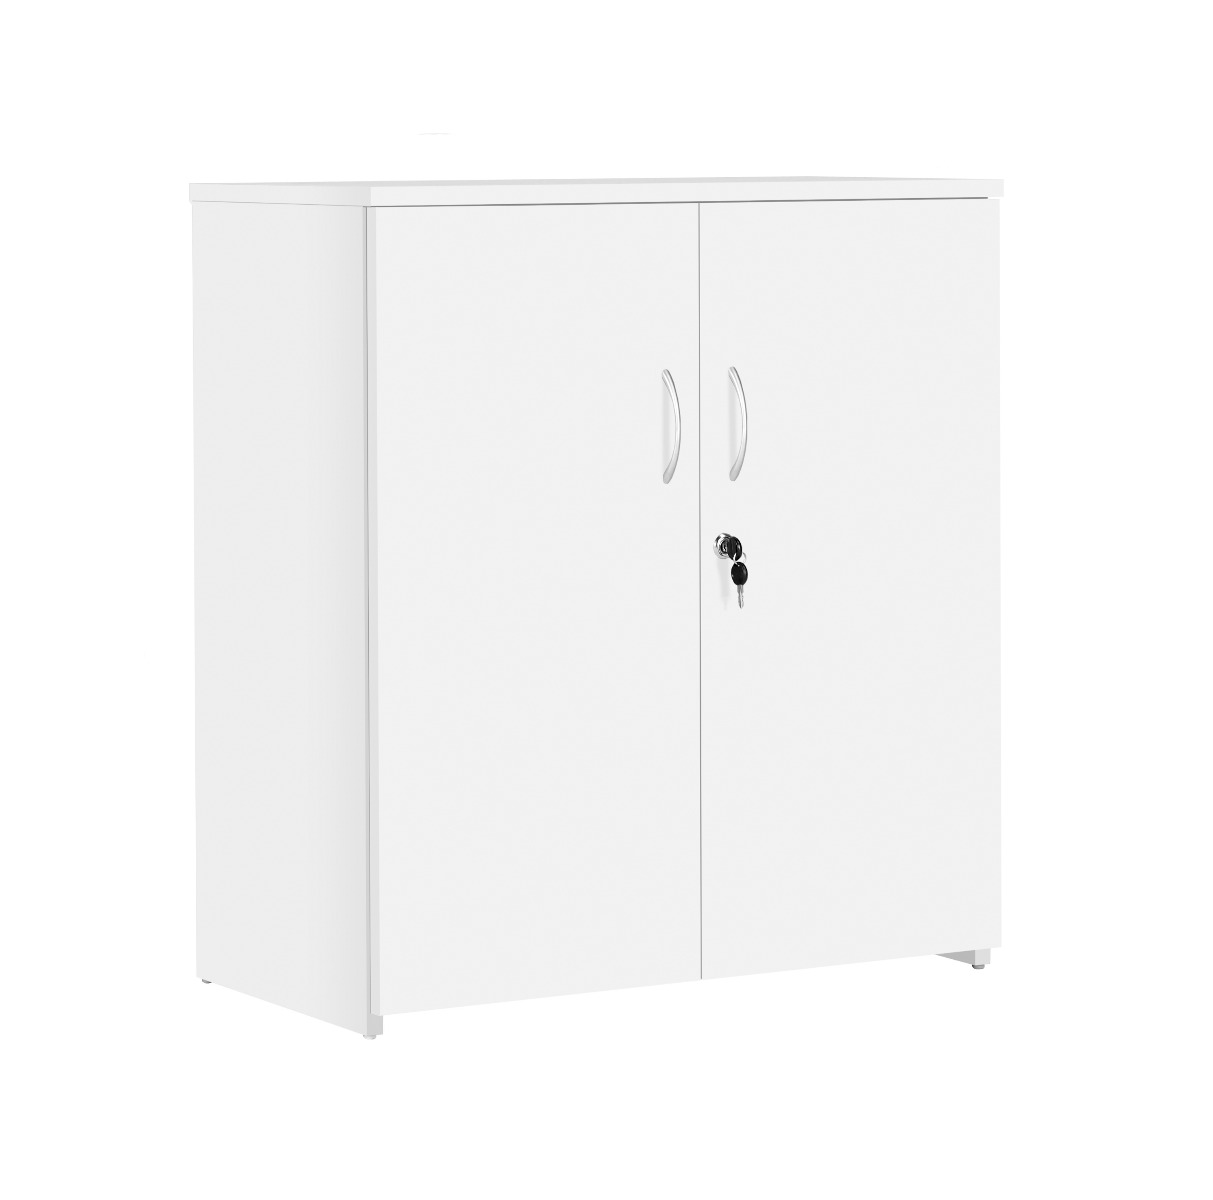 TC Office Next Day Eco 18 MFC White Office Cupboard with Shelf